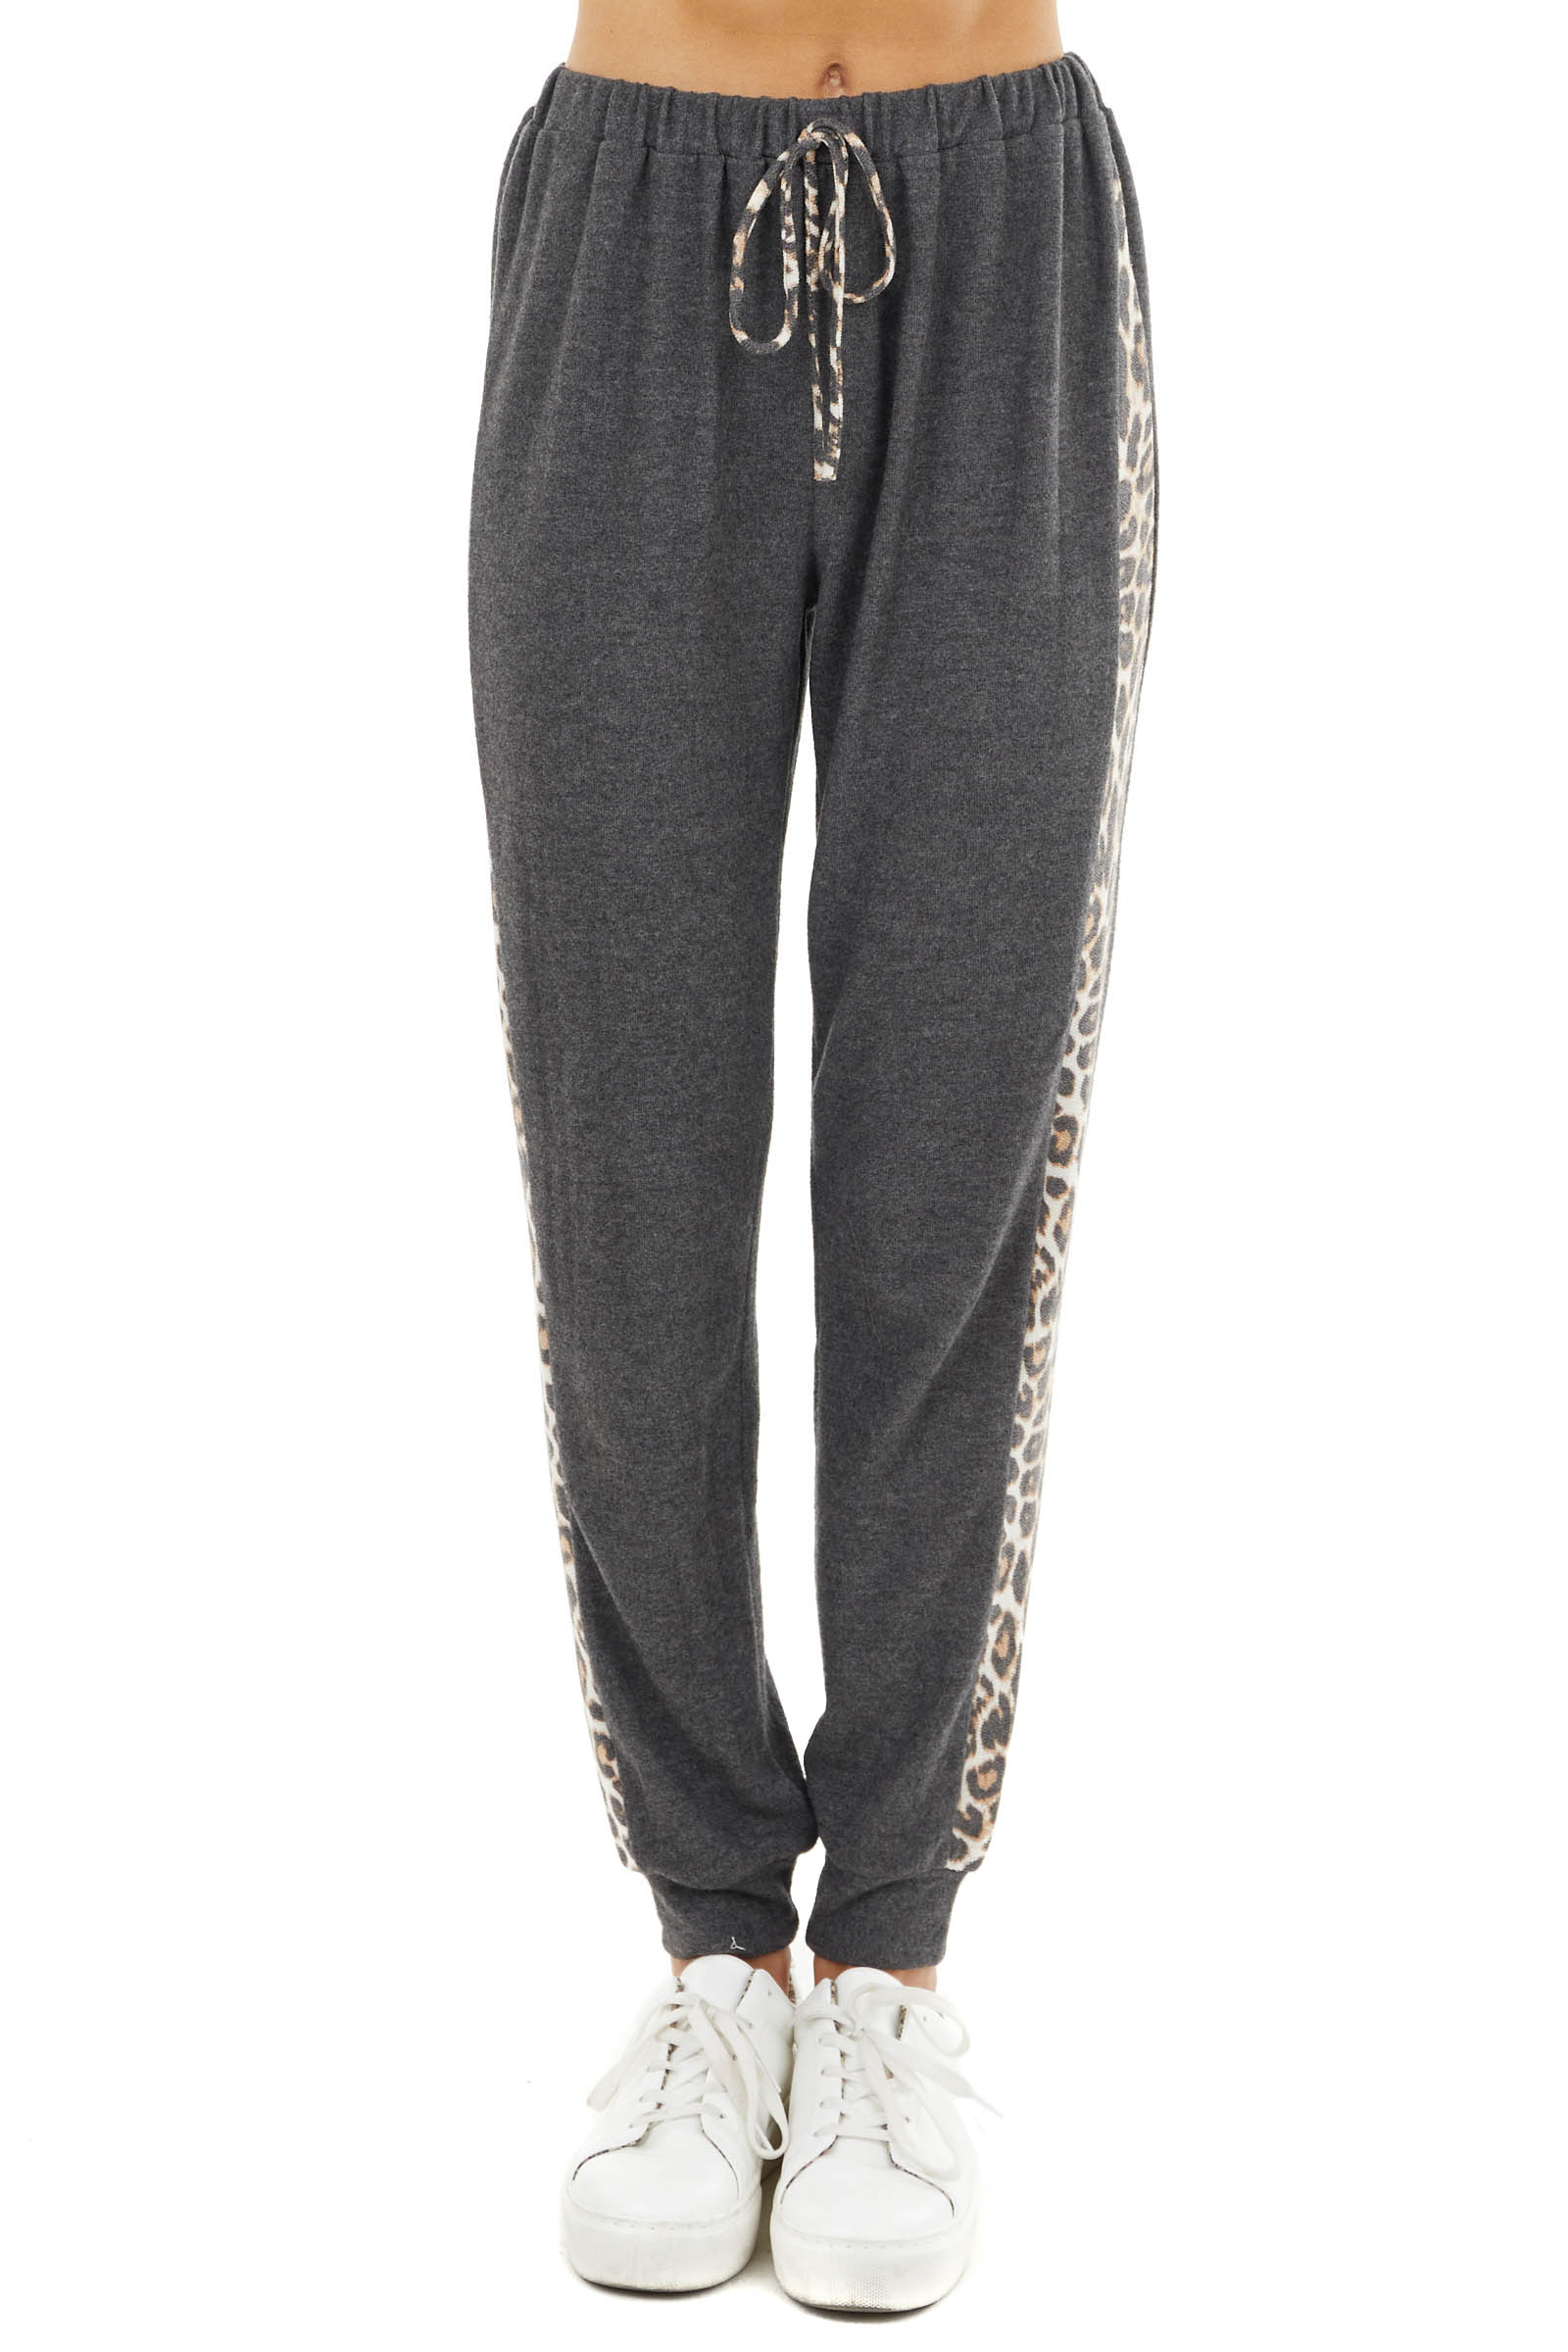 Charcoal Soft Knit Joggers with Leopard Print Side Contrast